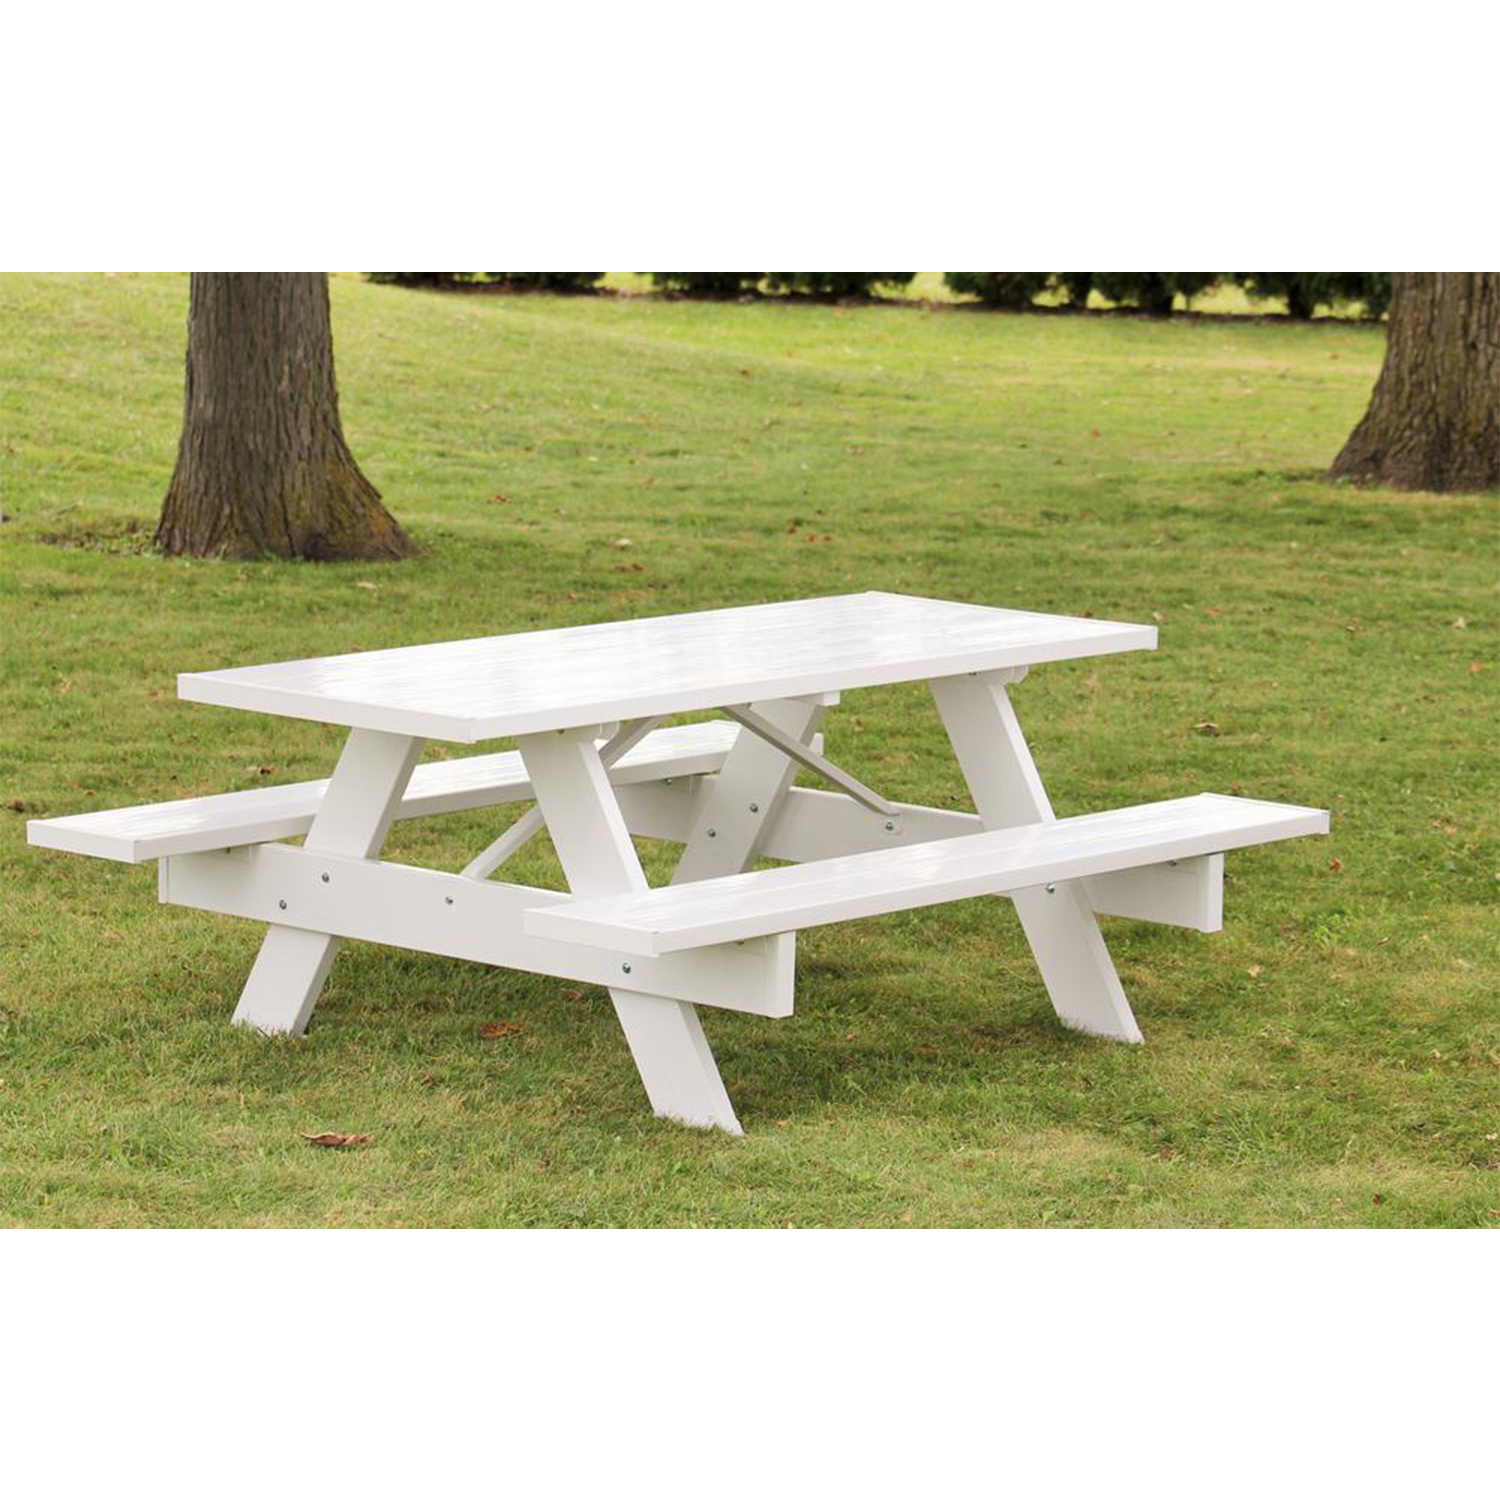 Stainless Steel Bathroom Vanity Cabinet, Dura Trel Backyard Outdoor Lightweight 72 Inch Picnic Table With Benches White Walmart Com Walmart Com